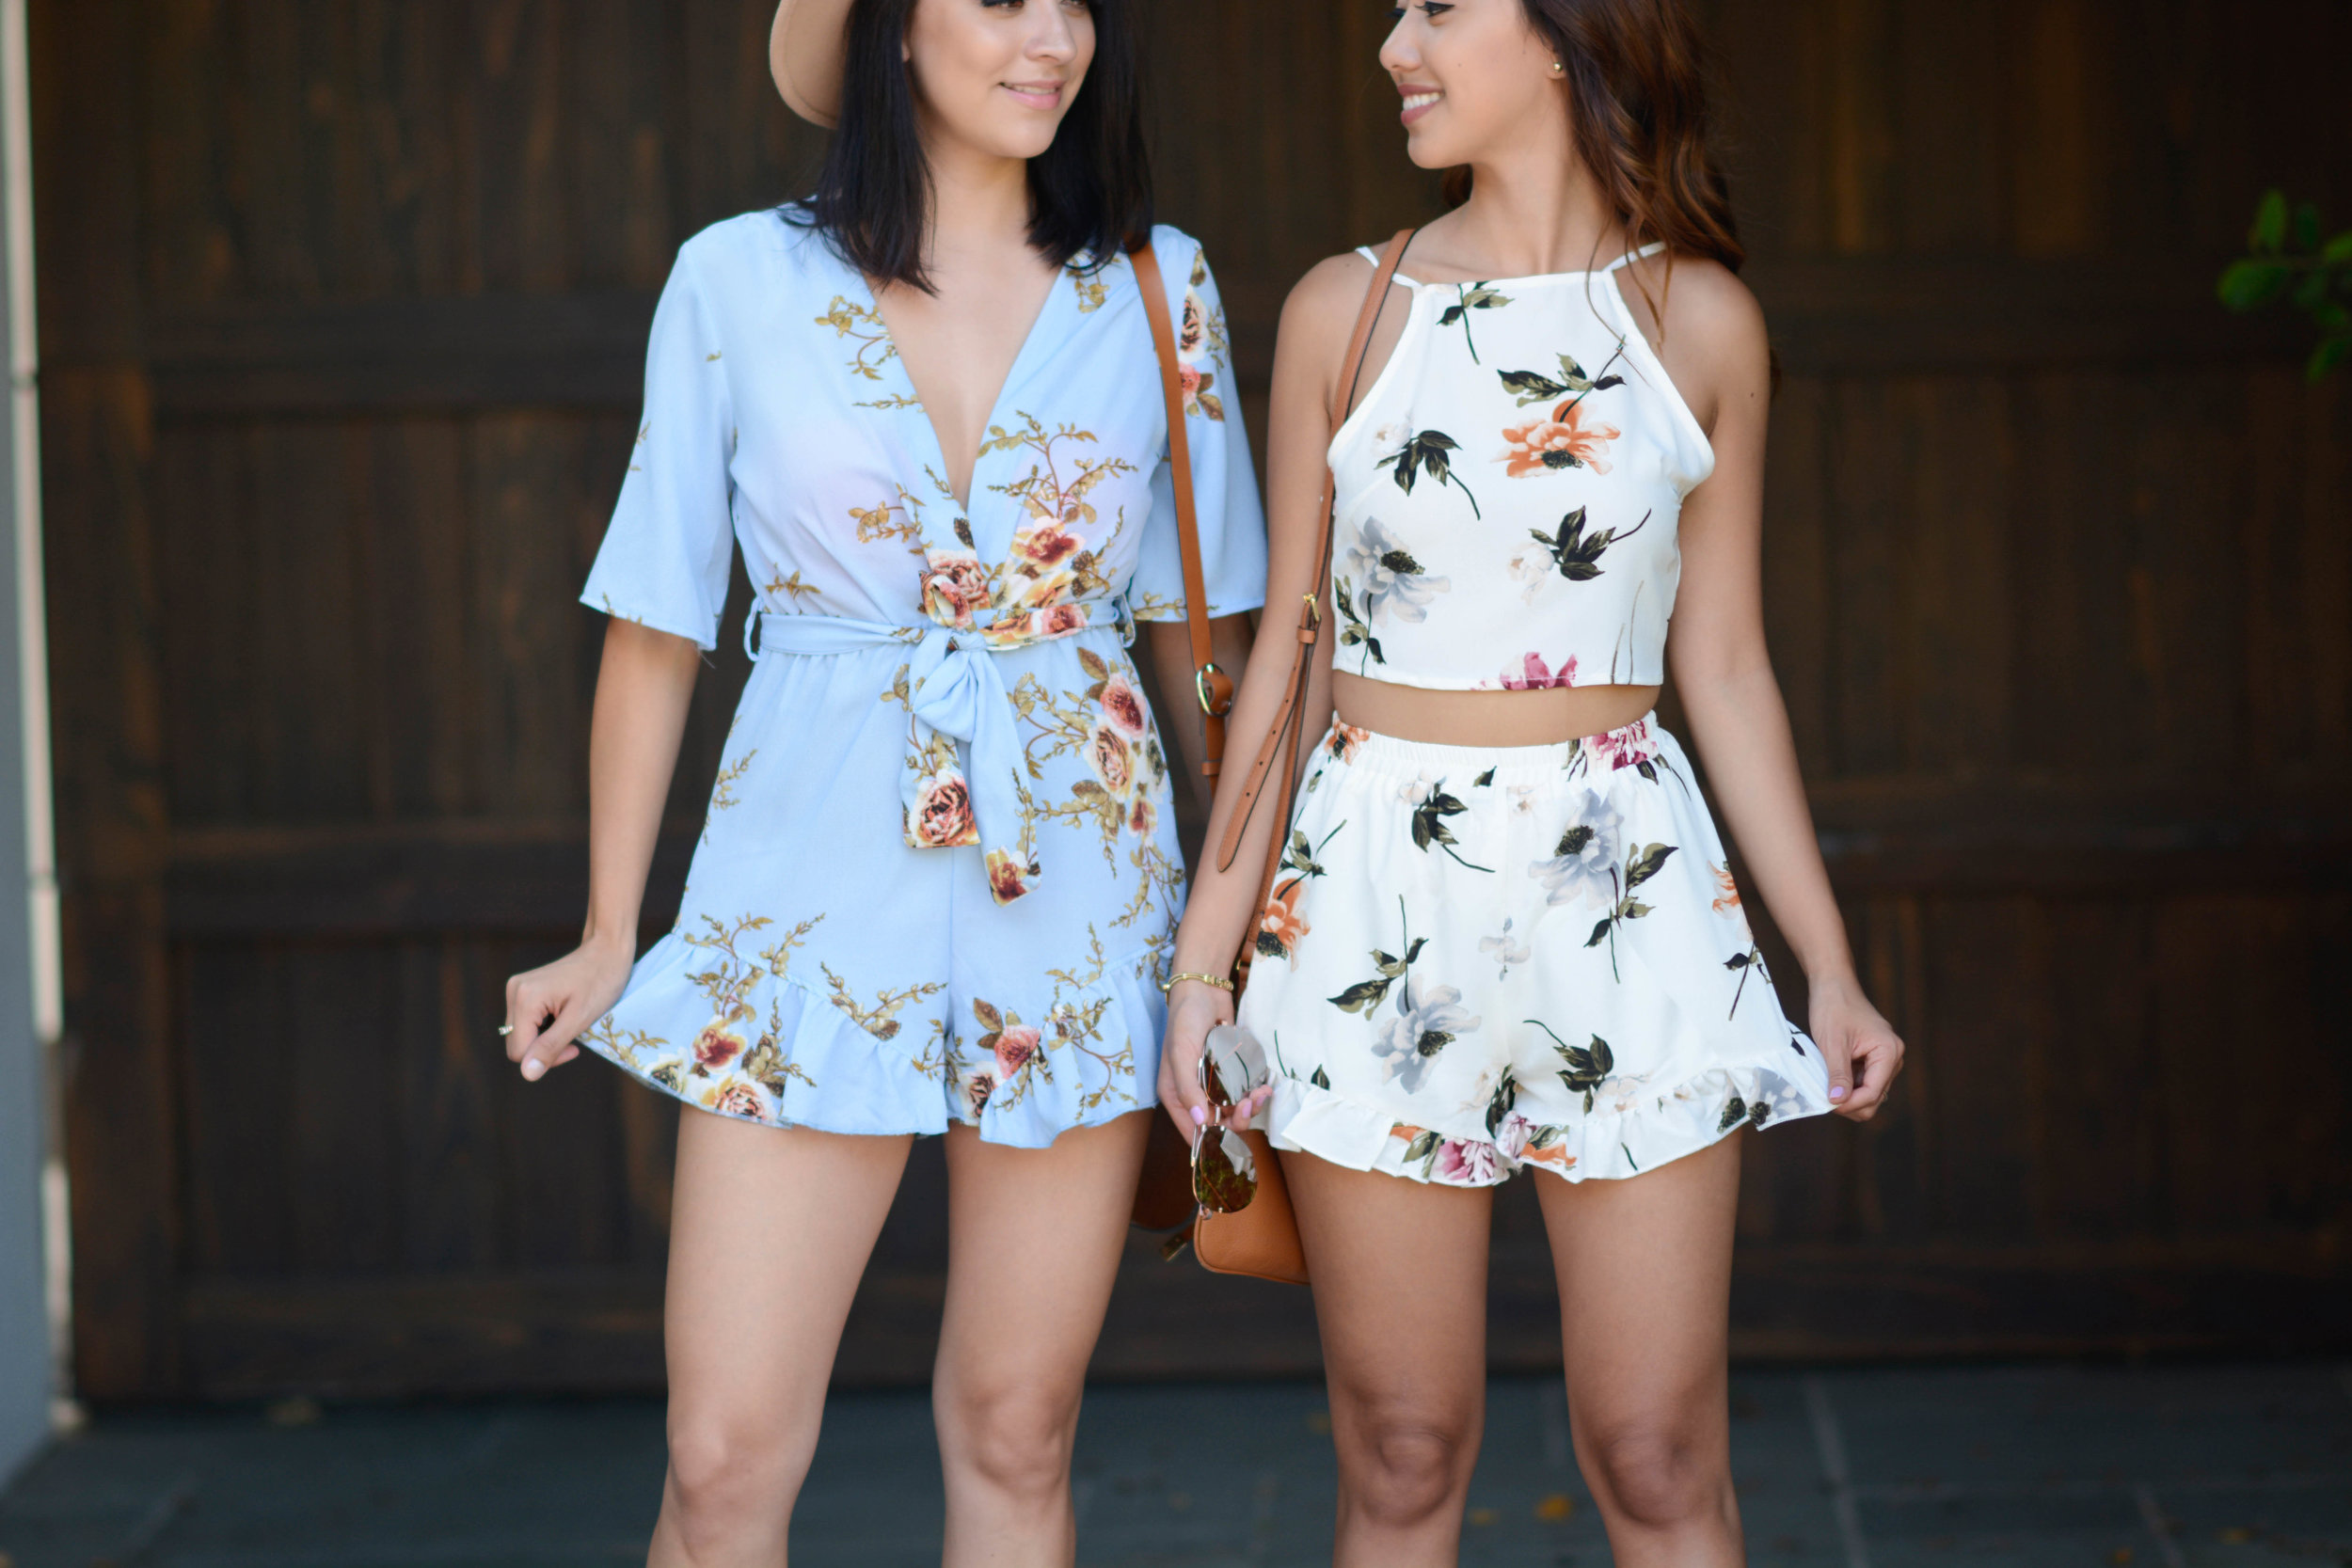 Feeling pretty in our ruffles & floral print.